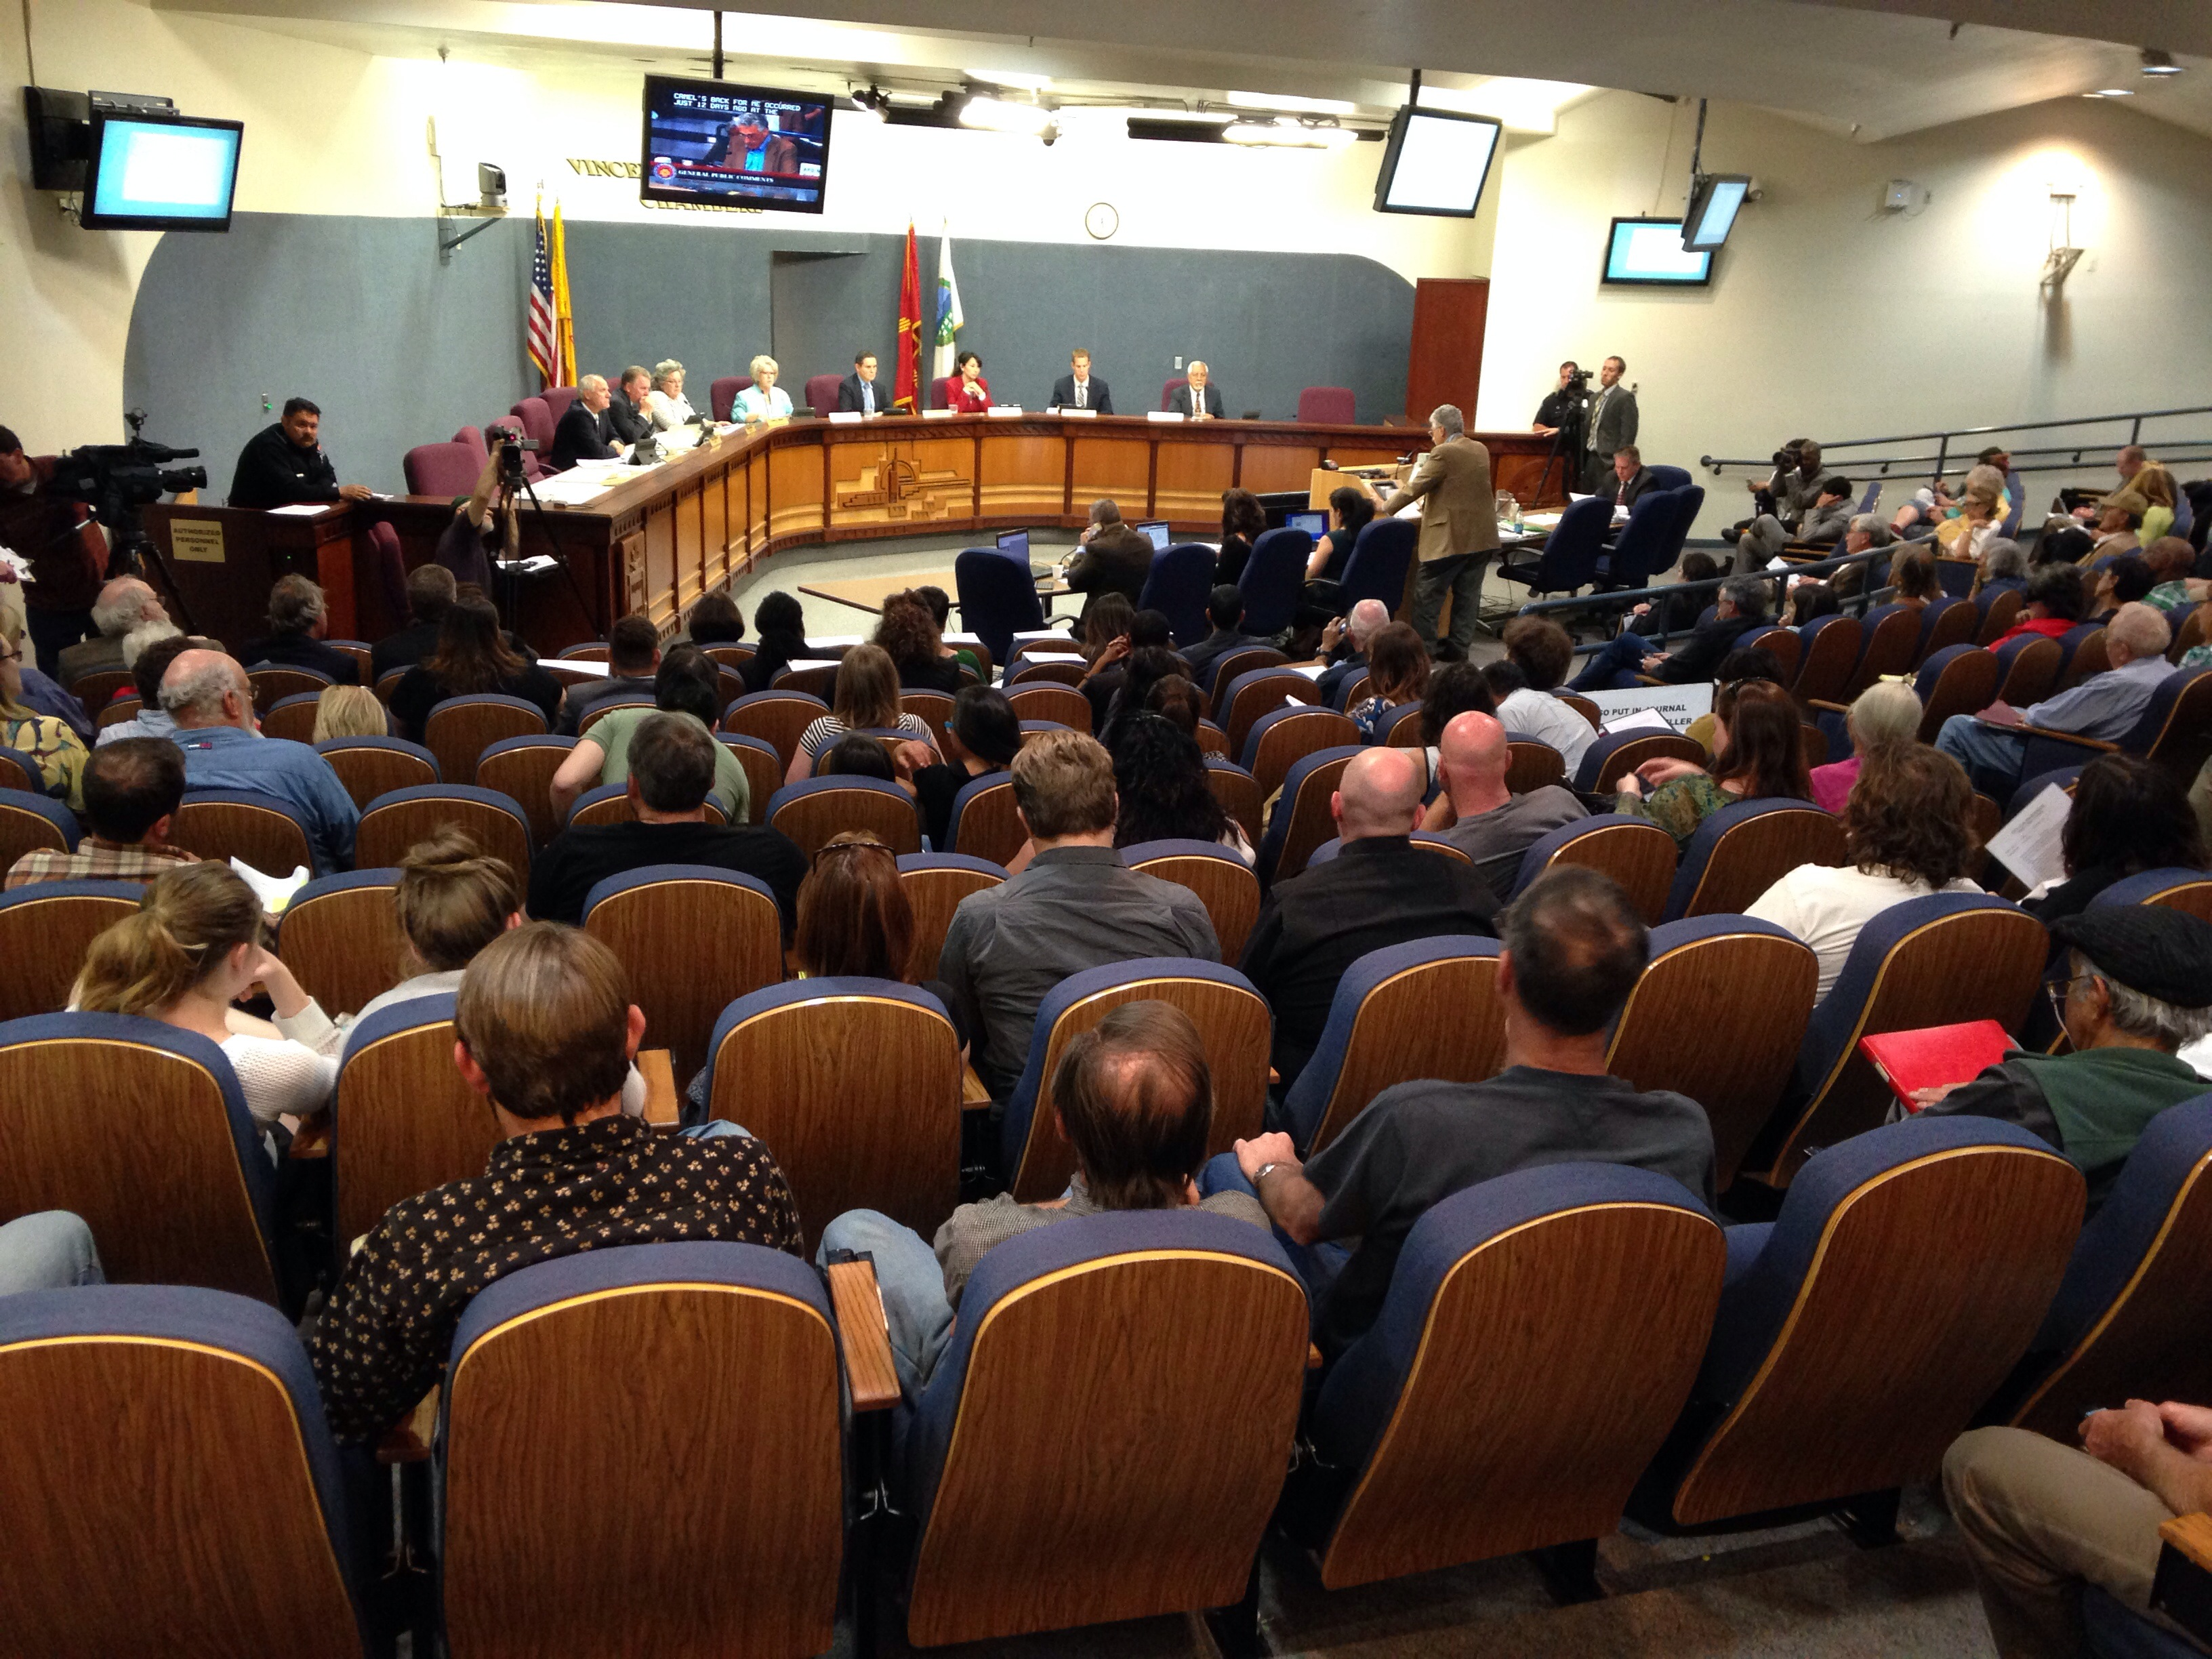 About 40 attendees signed up to speak to City Council members at the Monday, April 21 meeting. (Photo Credit: Carolyn Carlson)